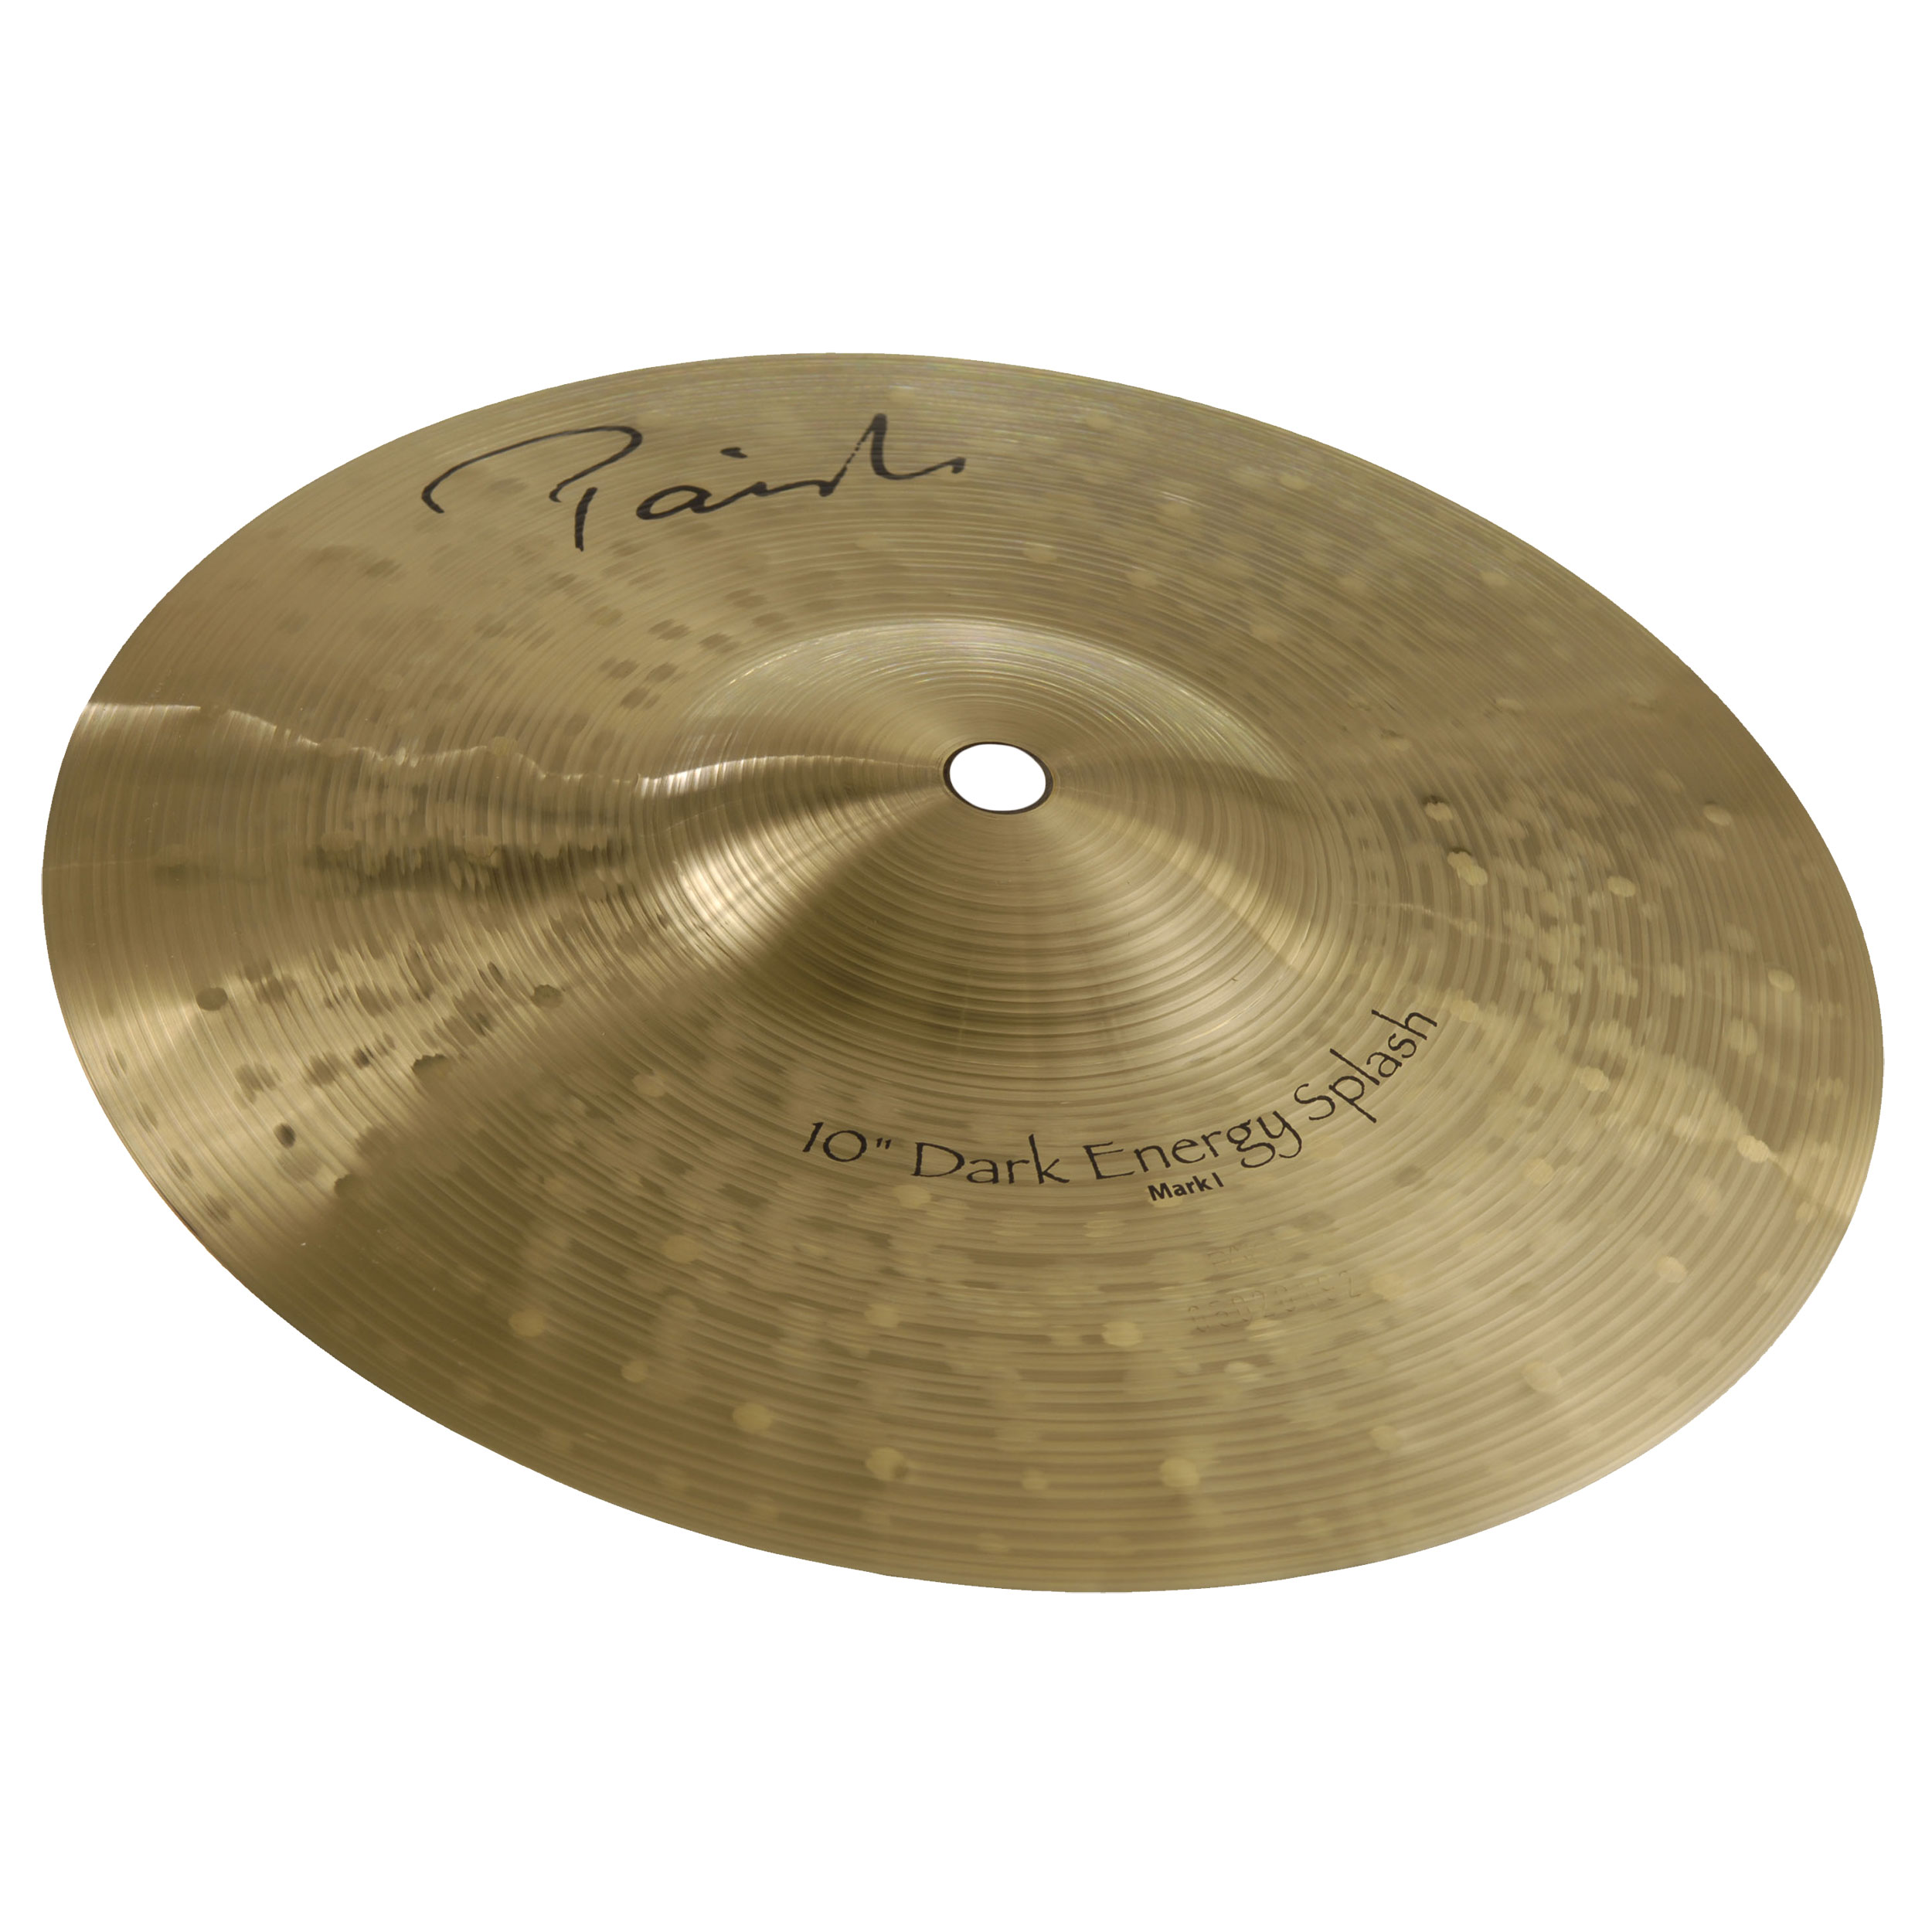 "Paiste 10"" Signature Dark Energy Splash Cymbal Mark I"